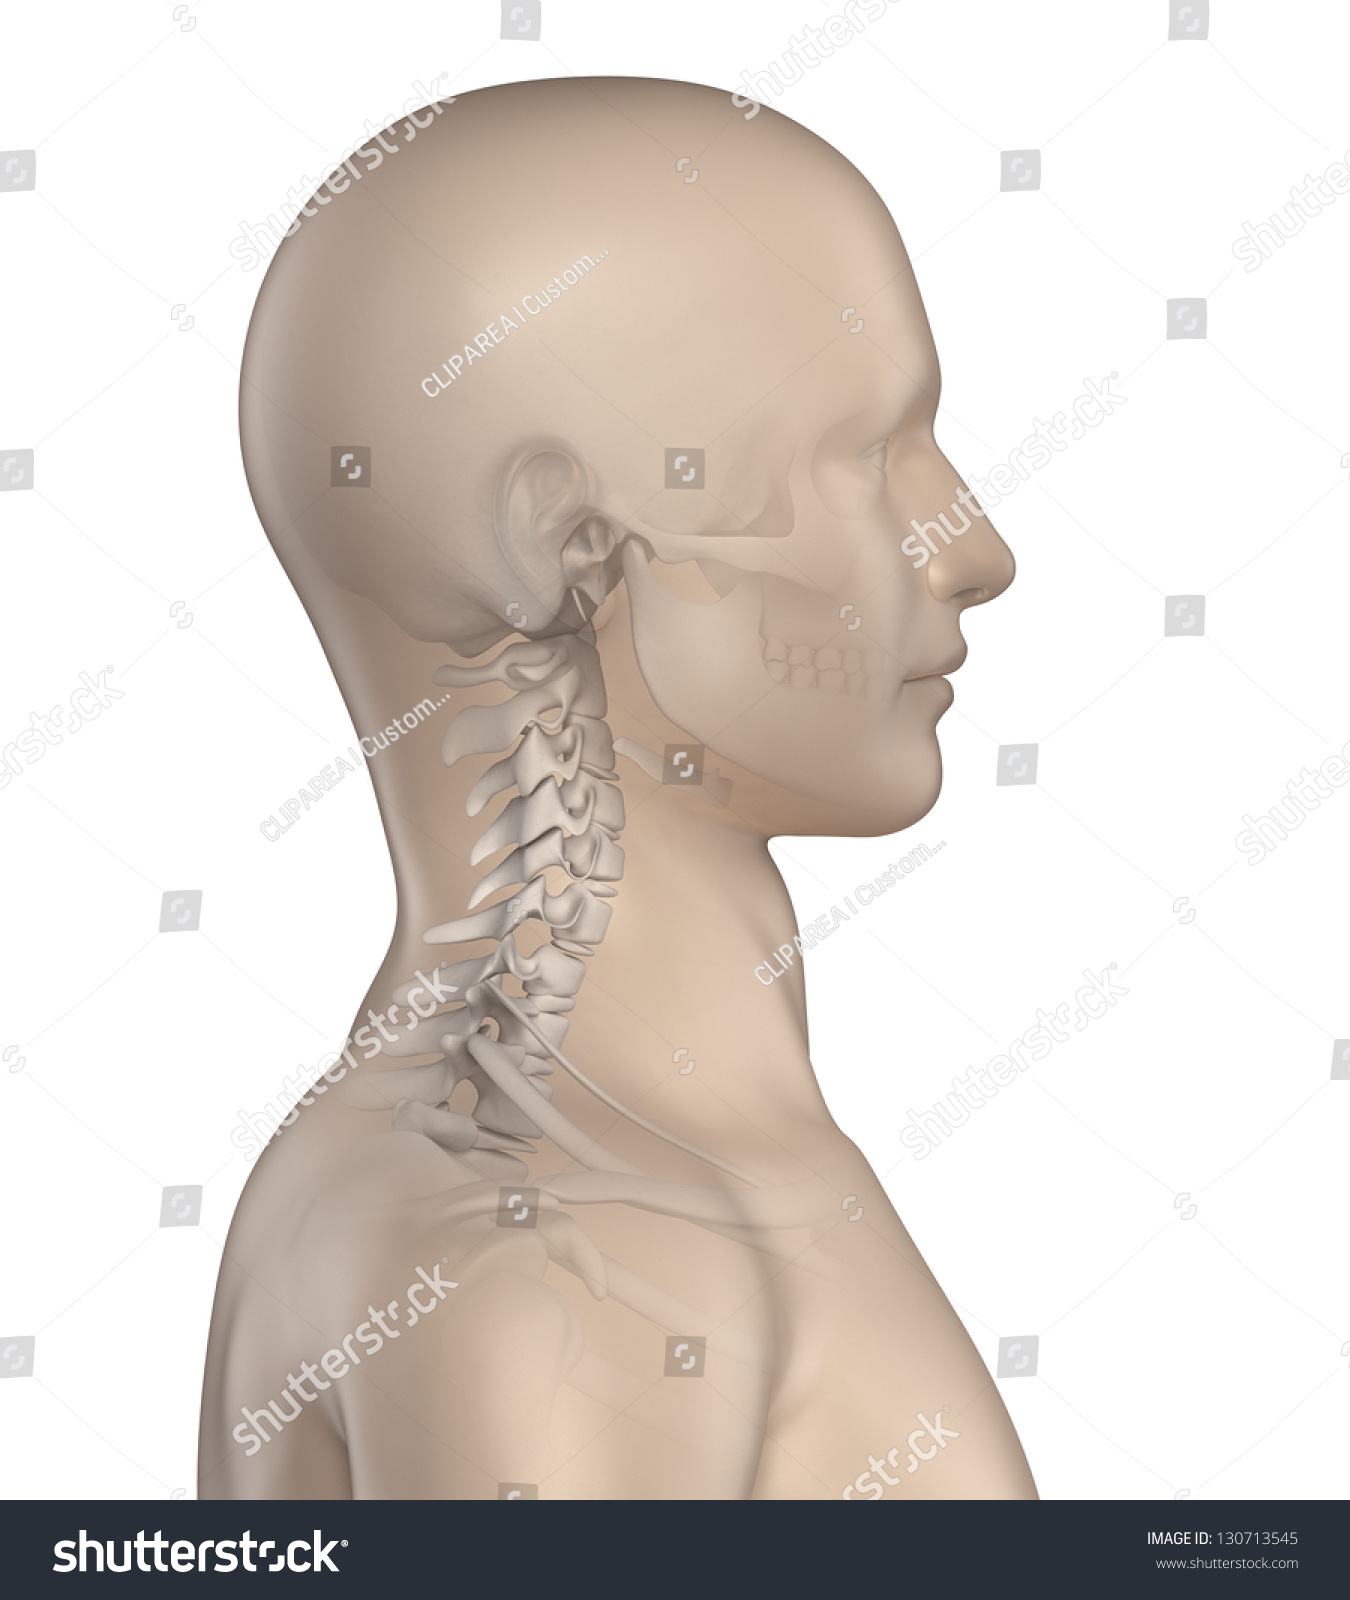 Royalty Free Stock Illustration Of Kyphotic Spine Cervical Region